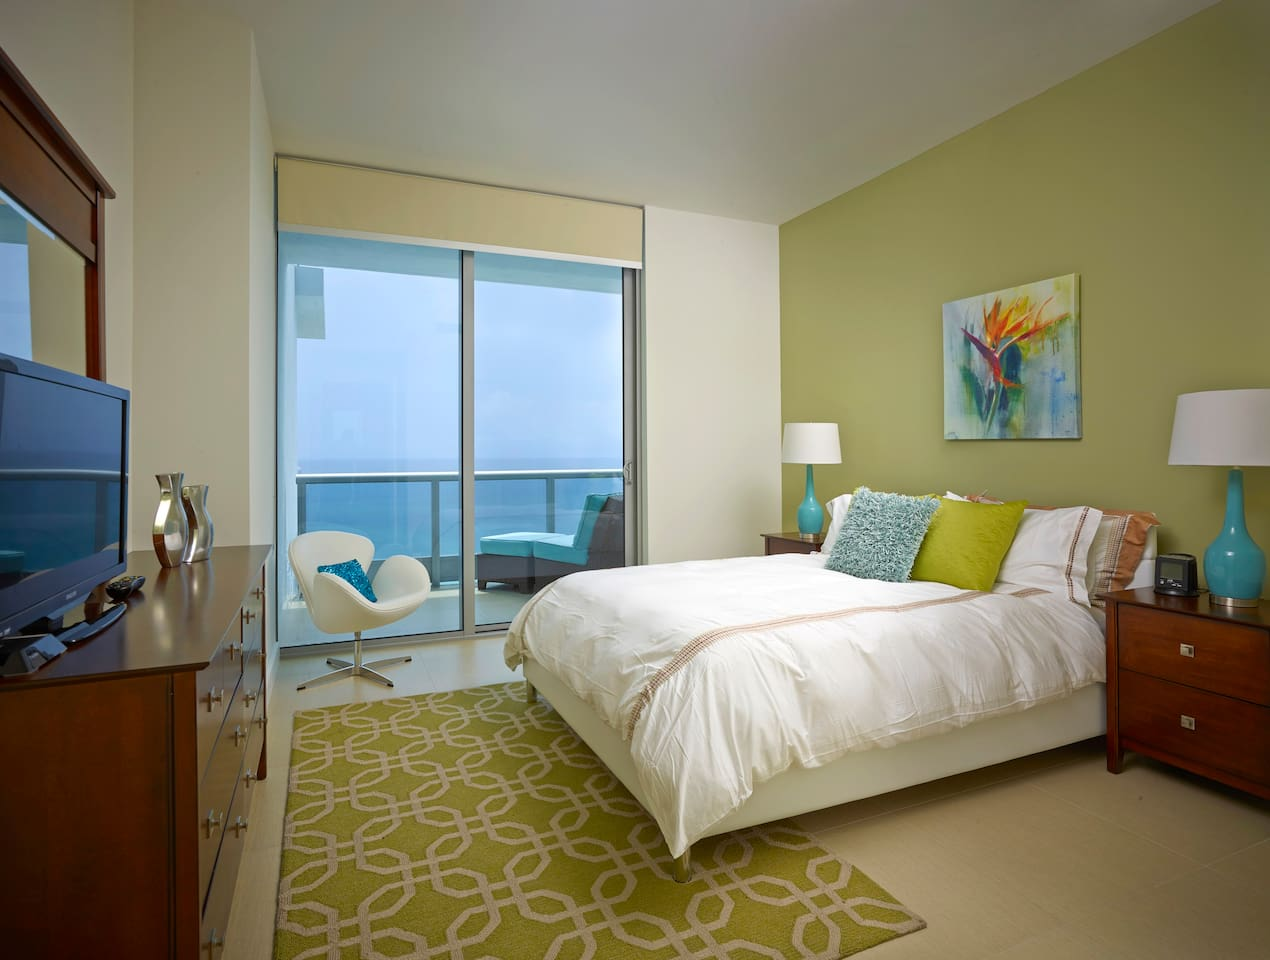 Private bedroom with queen size bed and floor to ceiling windows providing a lot of natural light